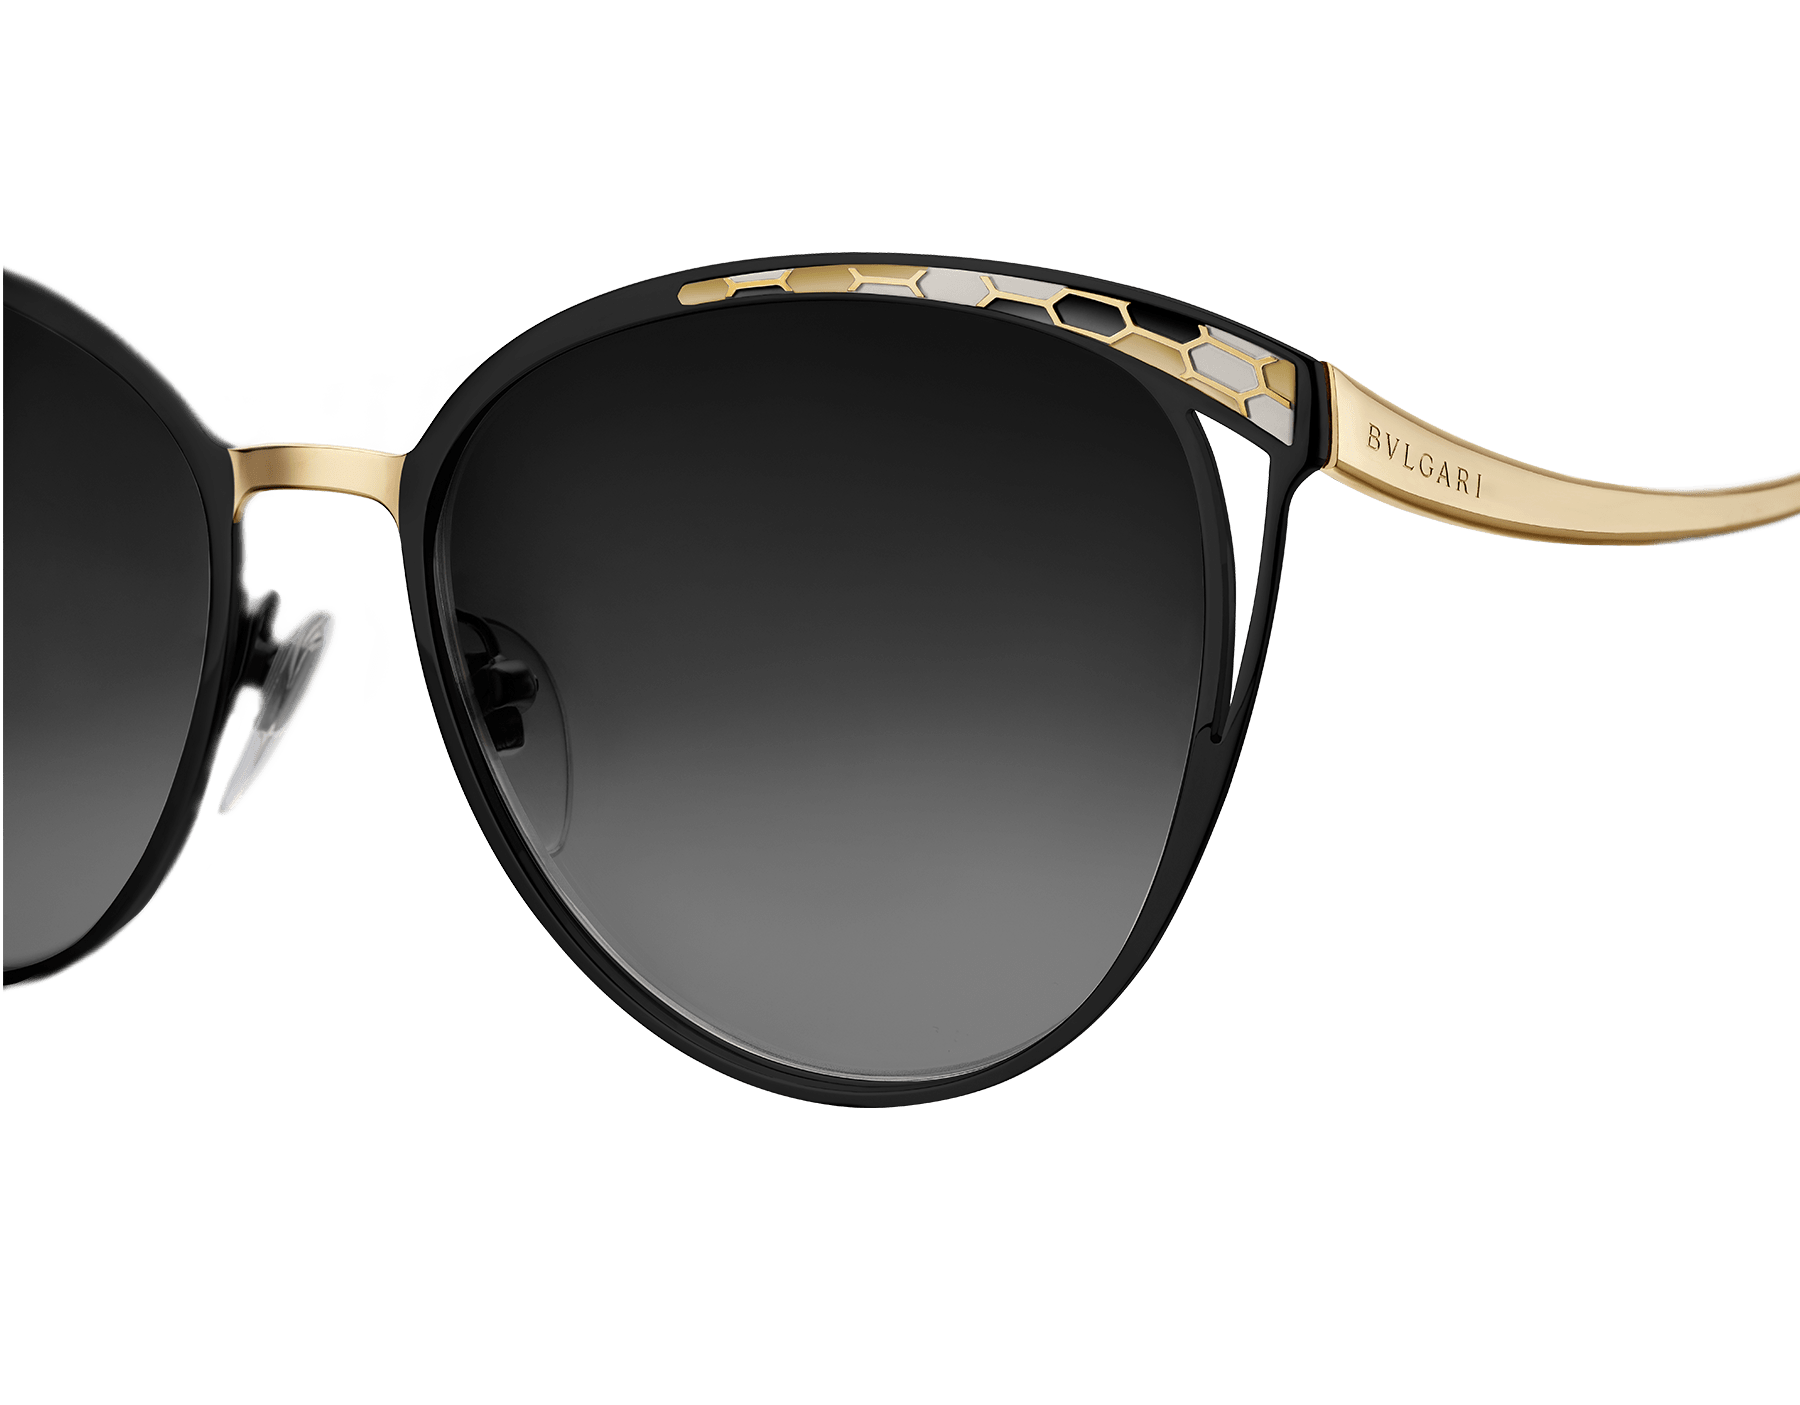 Bulgari Serpenti Serpentine cat-eye metal sunglasses. BV6083 image 2